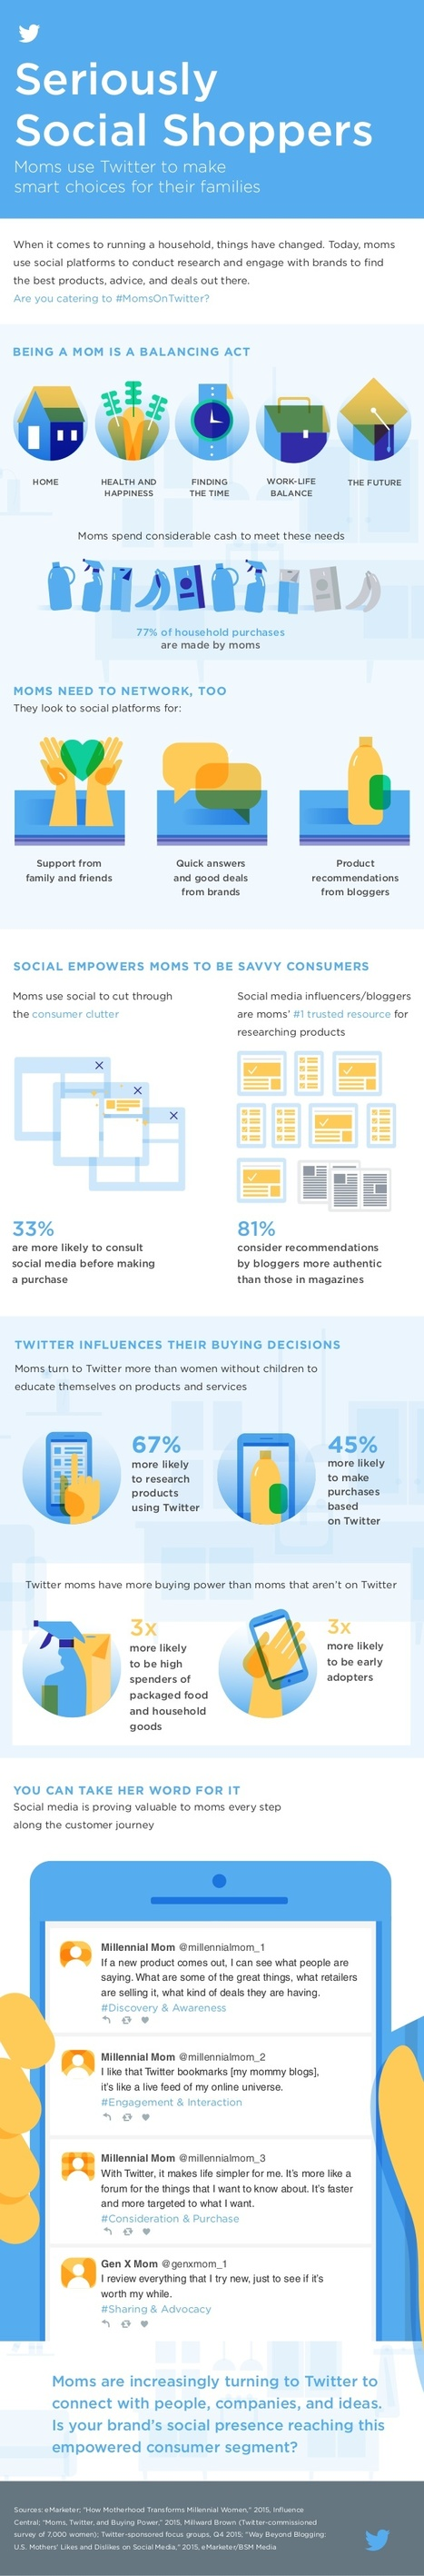 Moms Who Use Twitter Are More Likely to Find Recommendations Authentic #Infographic | MarketingHits | Scoop.it